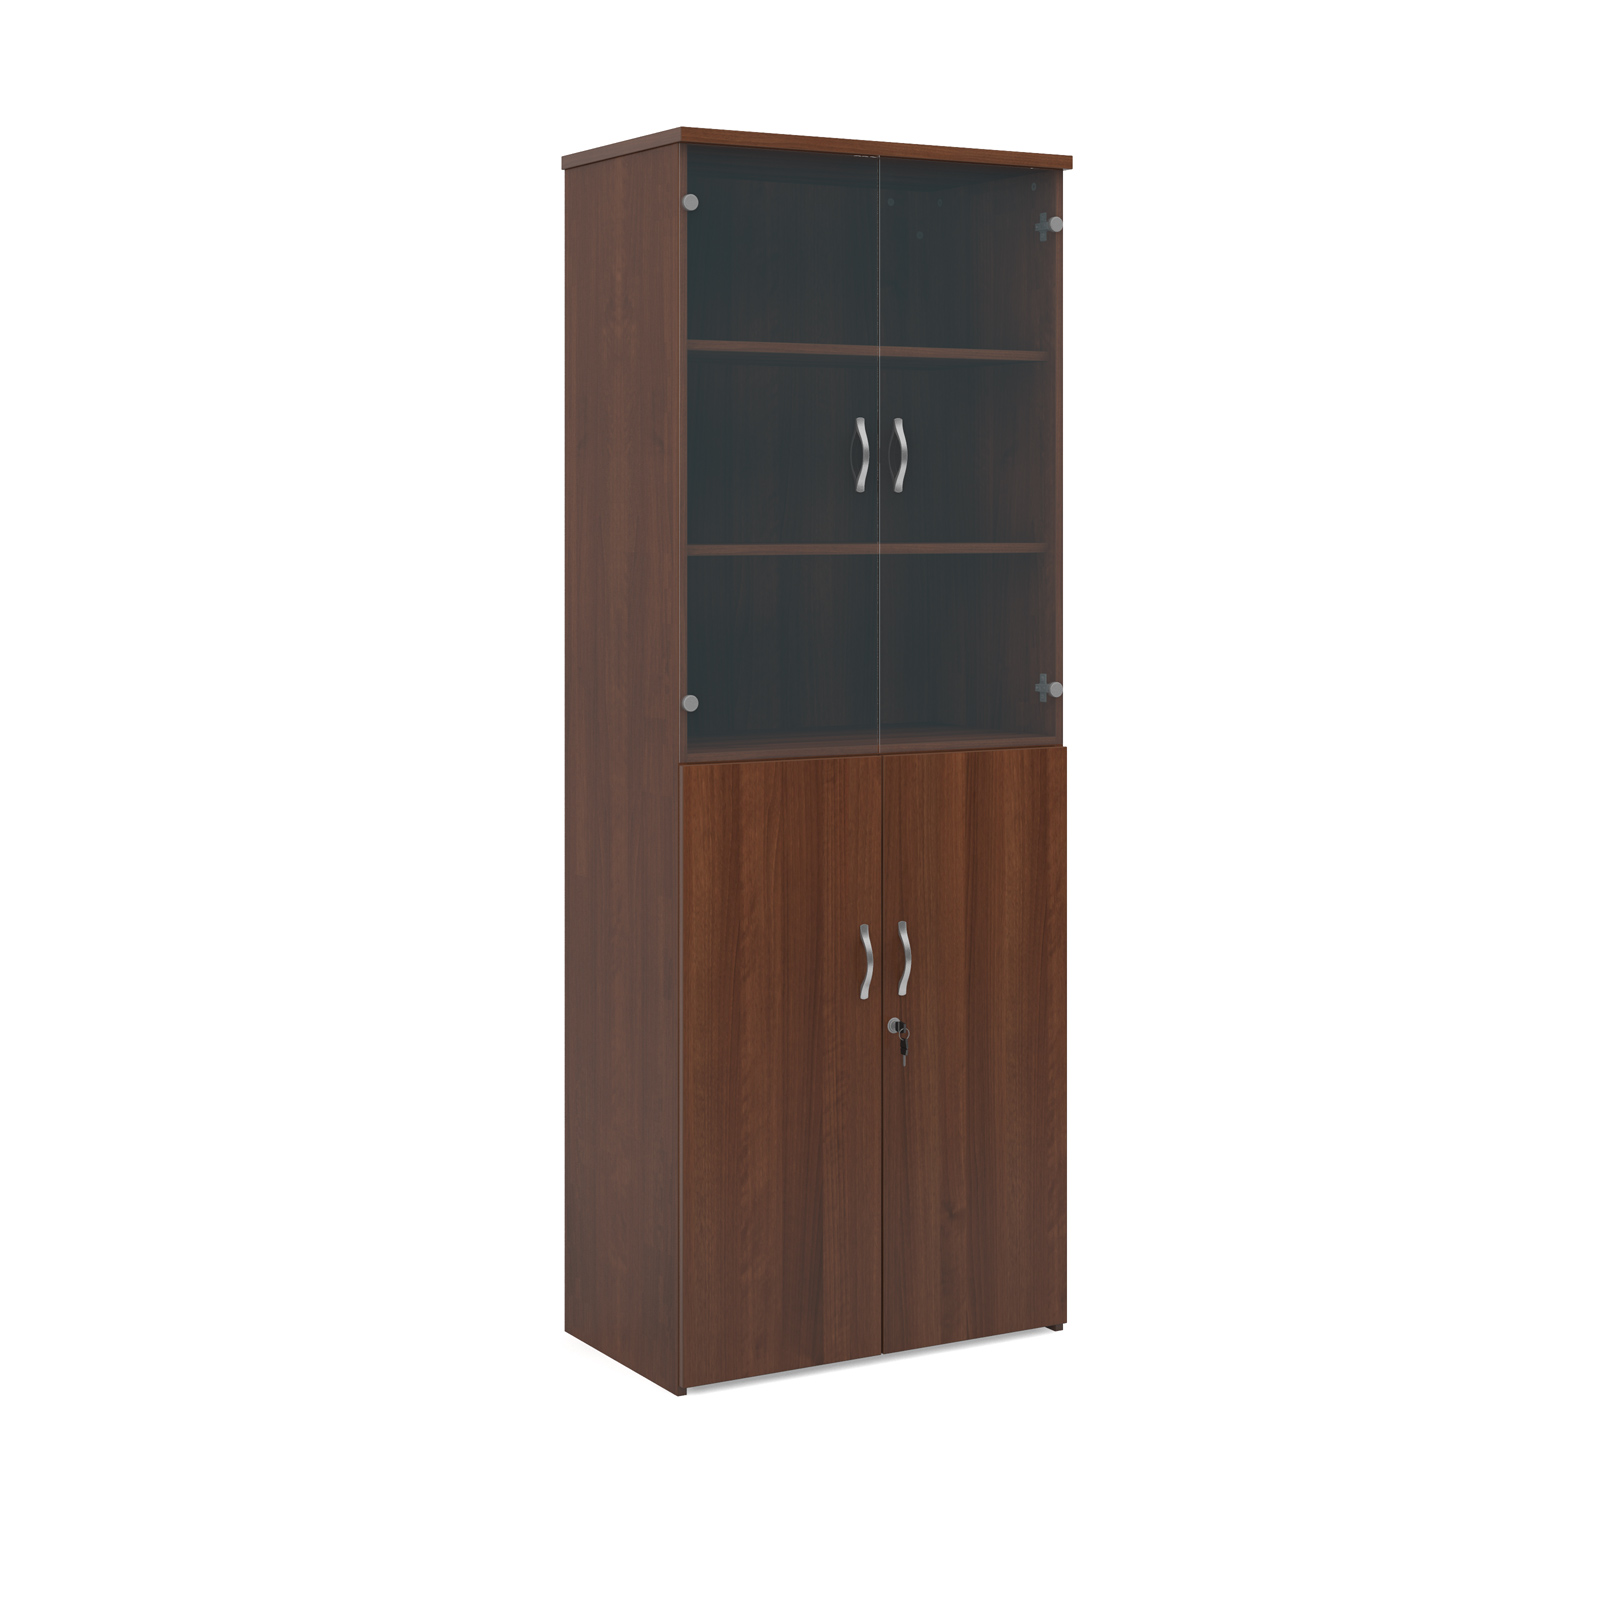 2140mm high combination unit with glass and wood doors in walnut